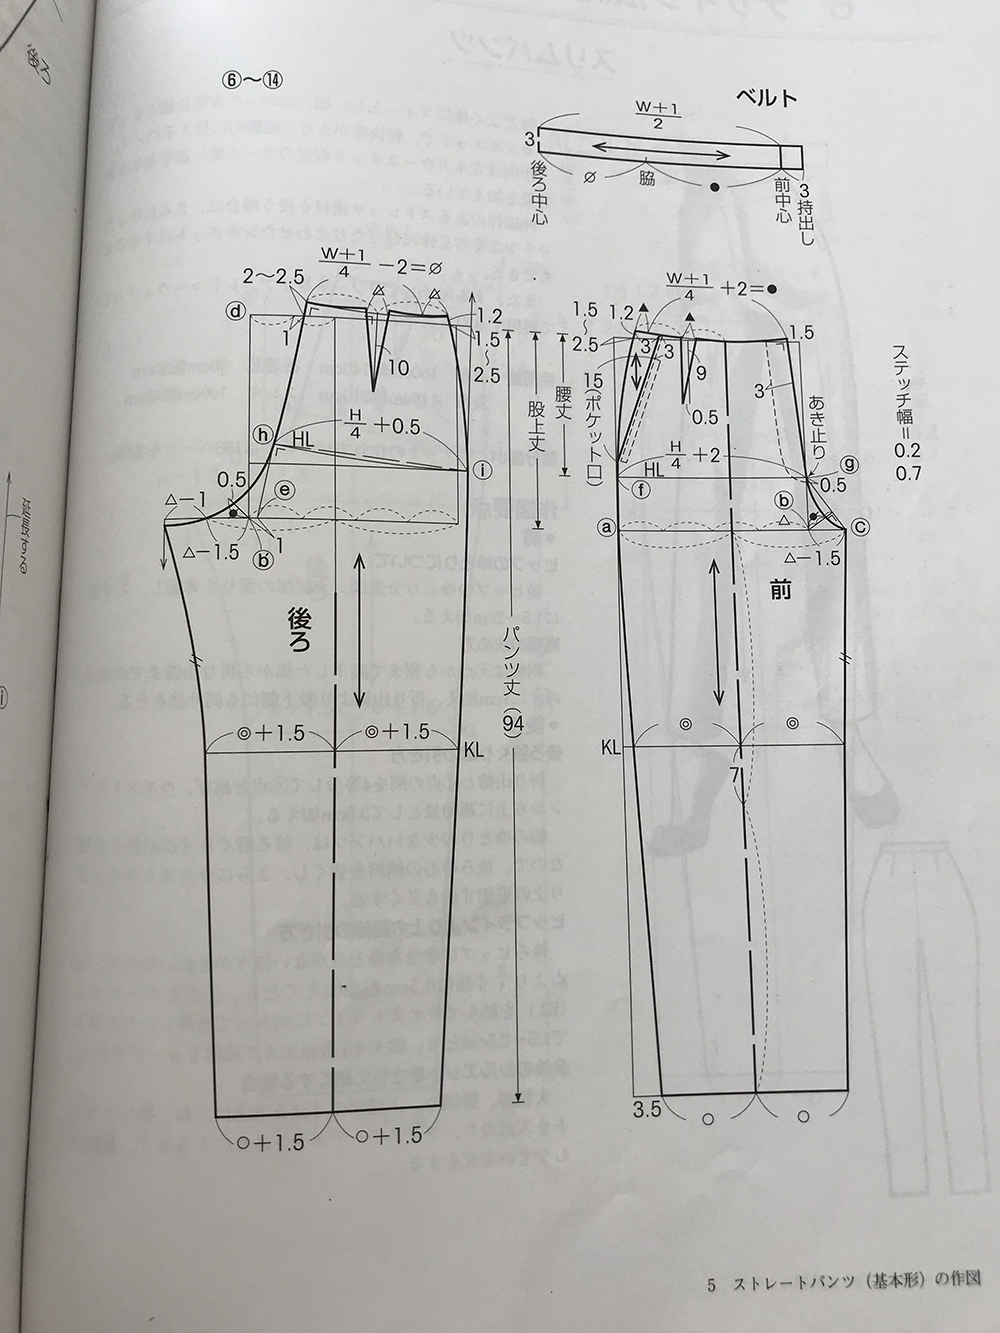 Bunka-pants and skirts-pants-pattern-draft.jpg